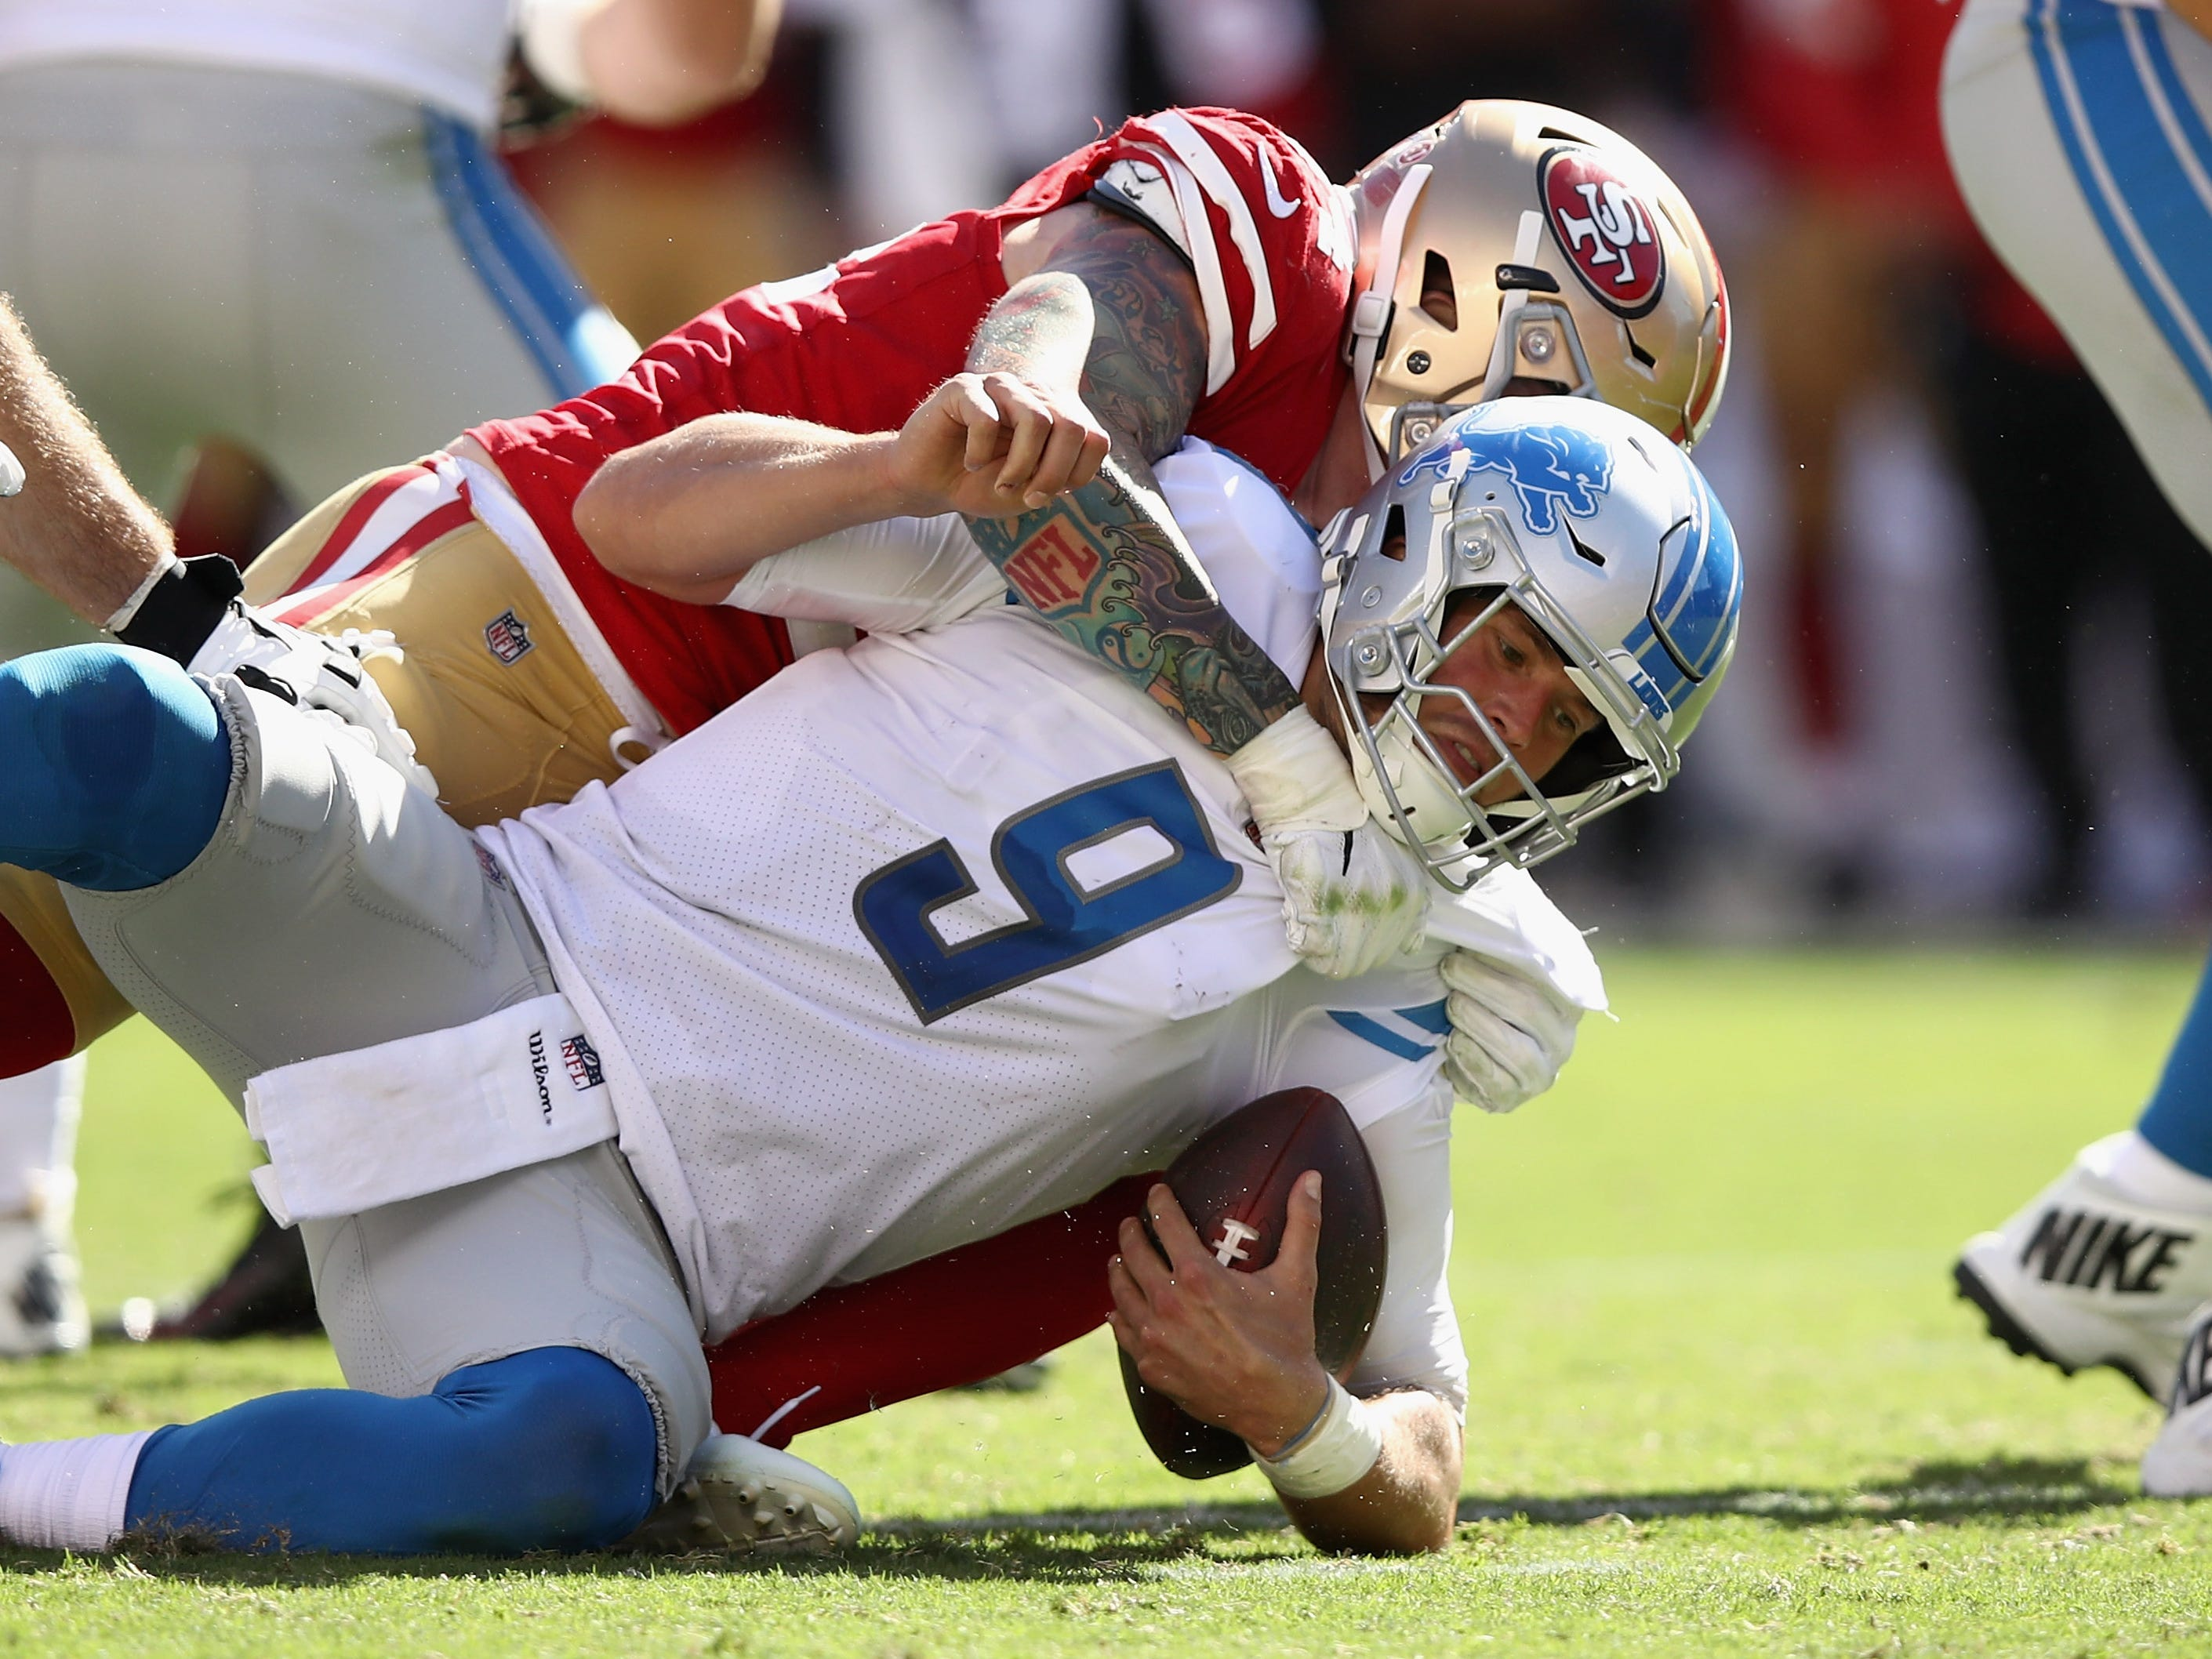 Lions quarterback Matthew Stafford is sacked by 49ers' Cassius Marsh.